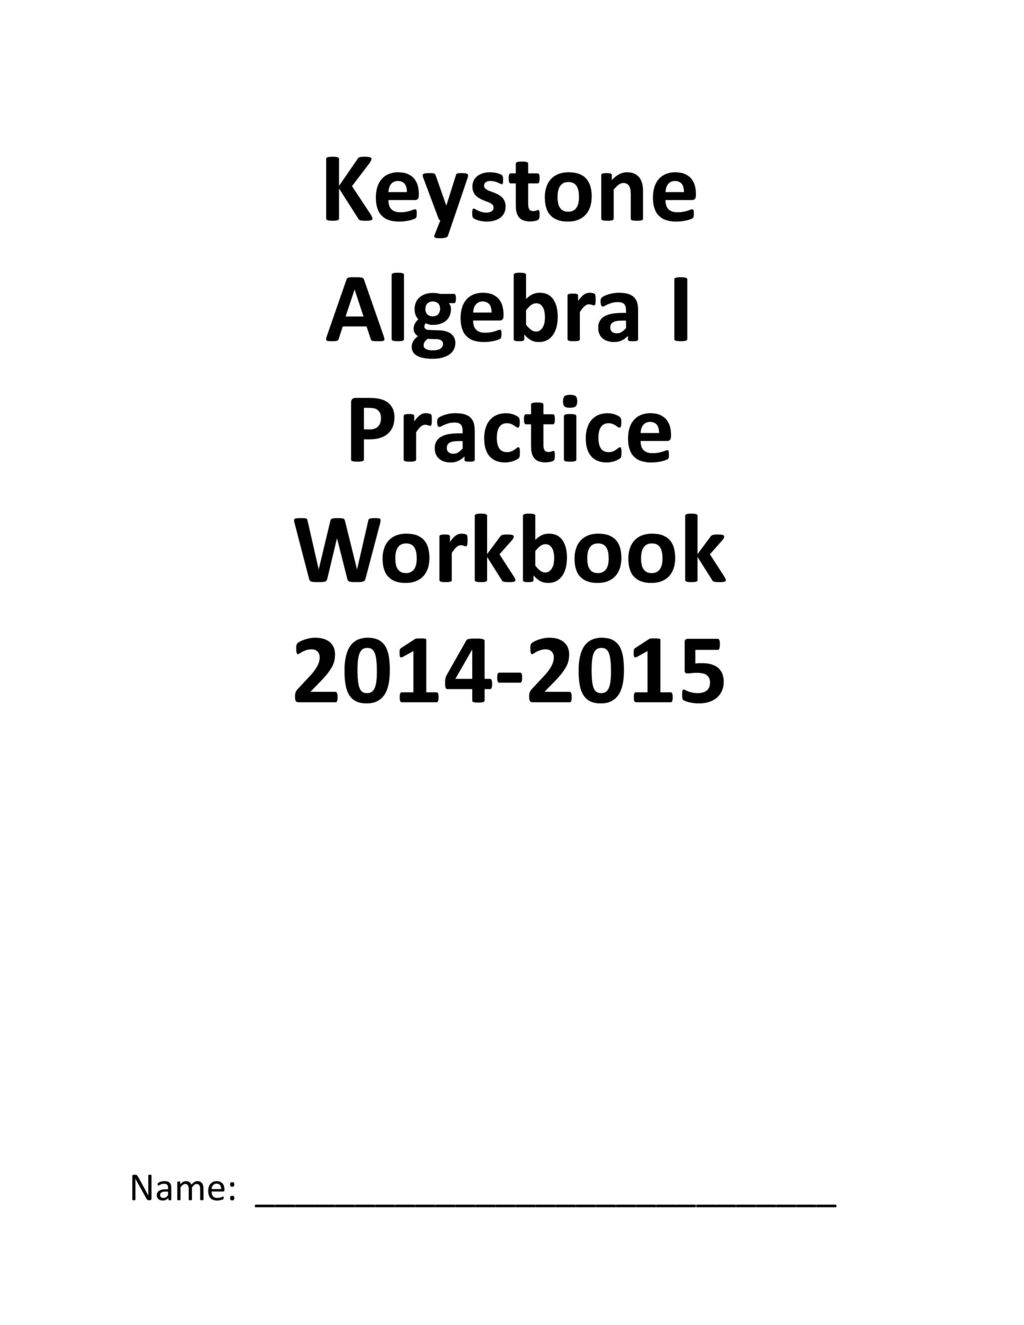 Workbooks practice workbook : Keystone Algebra I Practice Workbook - ppt download